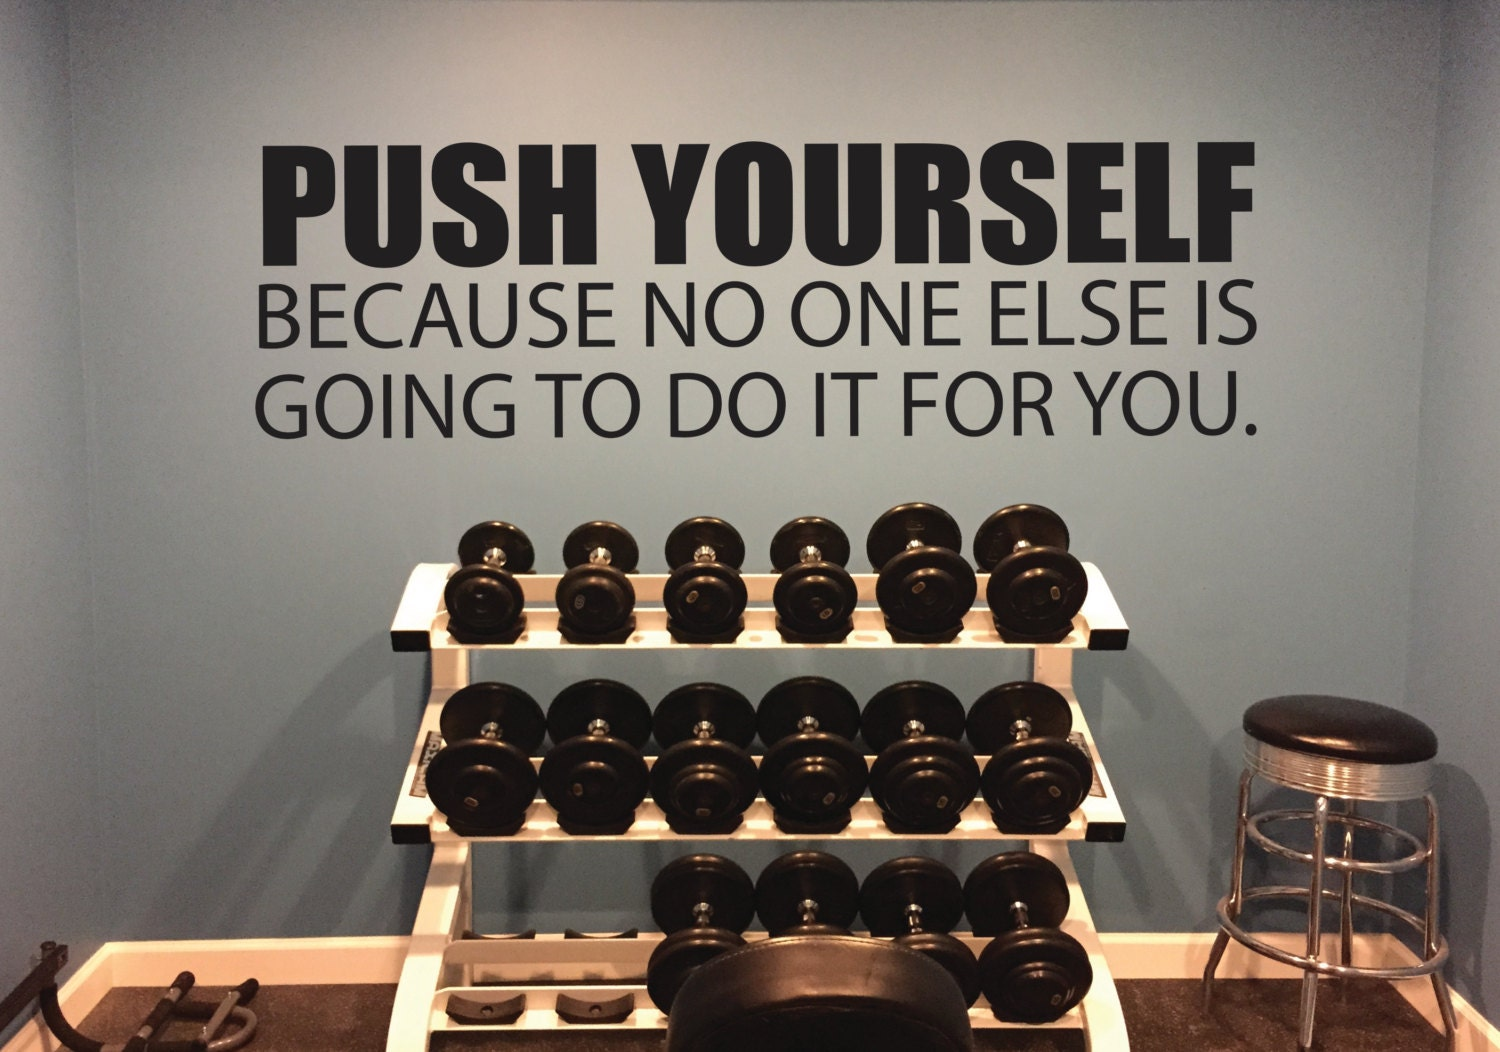 Gym Wall Sticker Motivational Wall Decal Push Yourself Because No